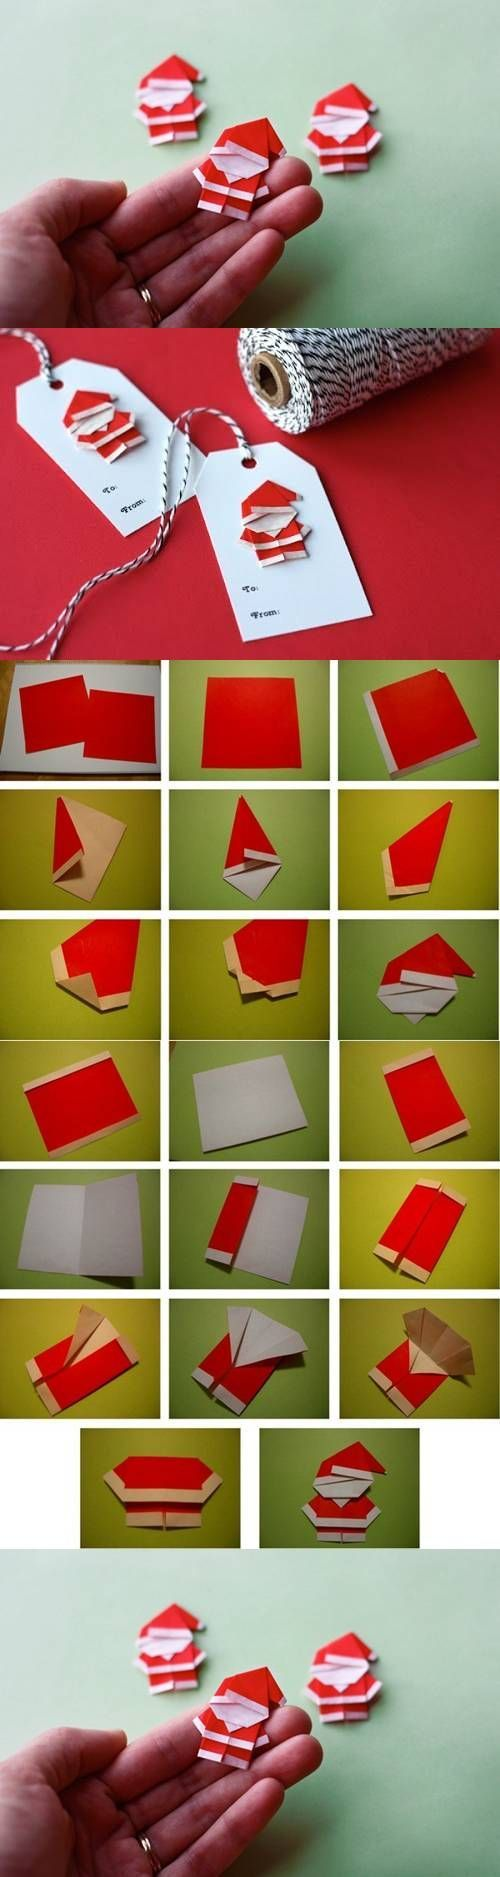 DIY Cute Paper Santa Claus DIY Projects / UsefulDIY.com